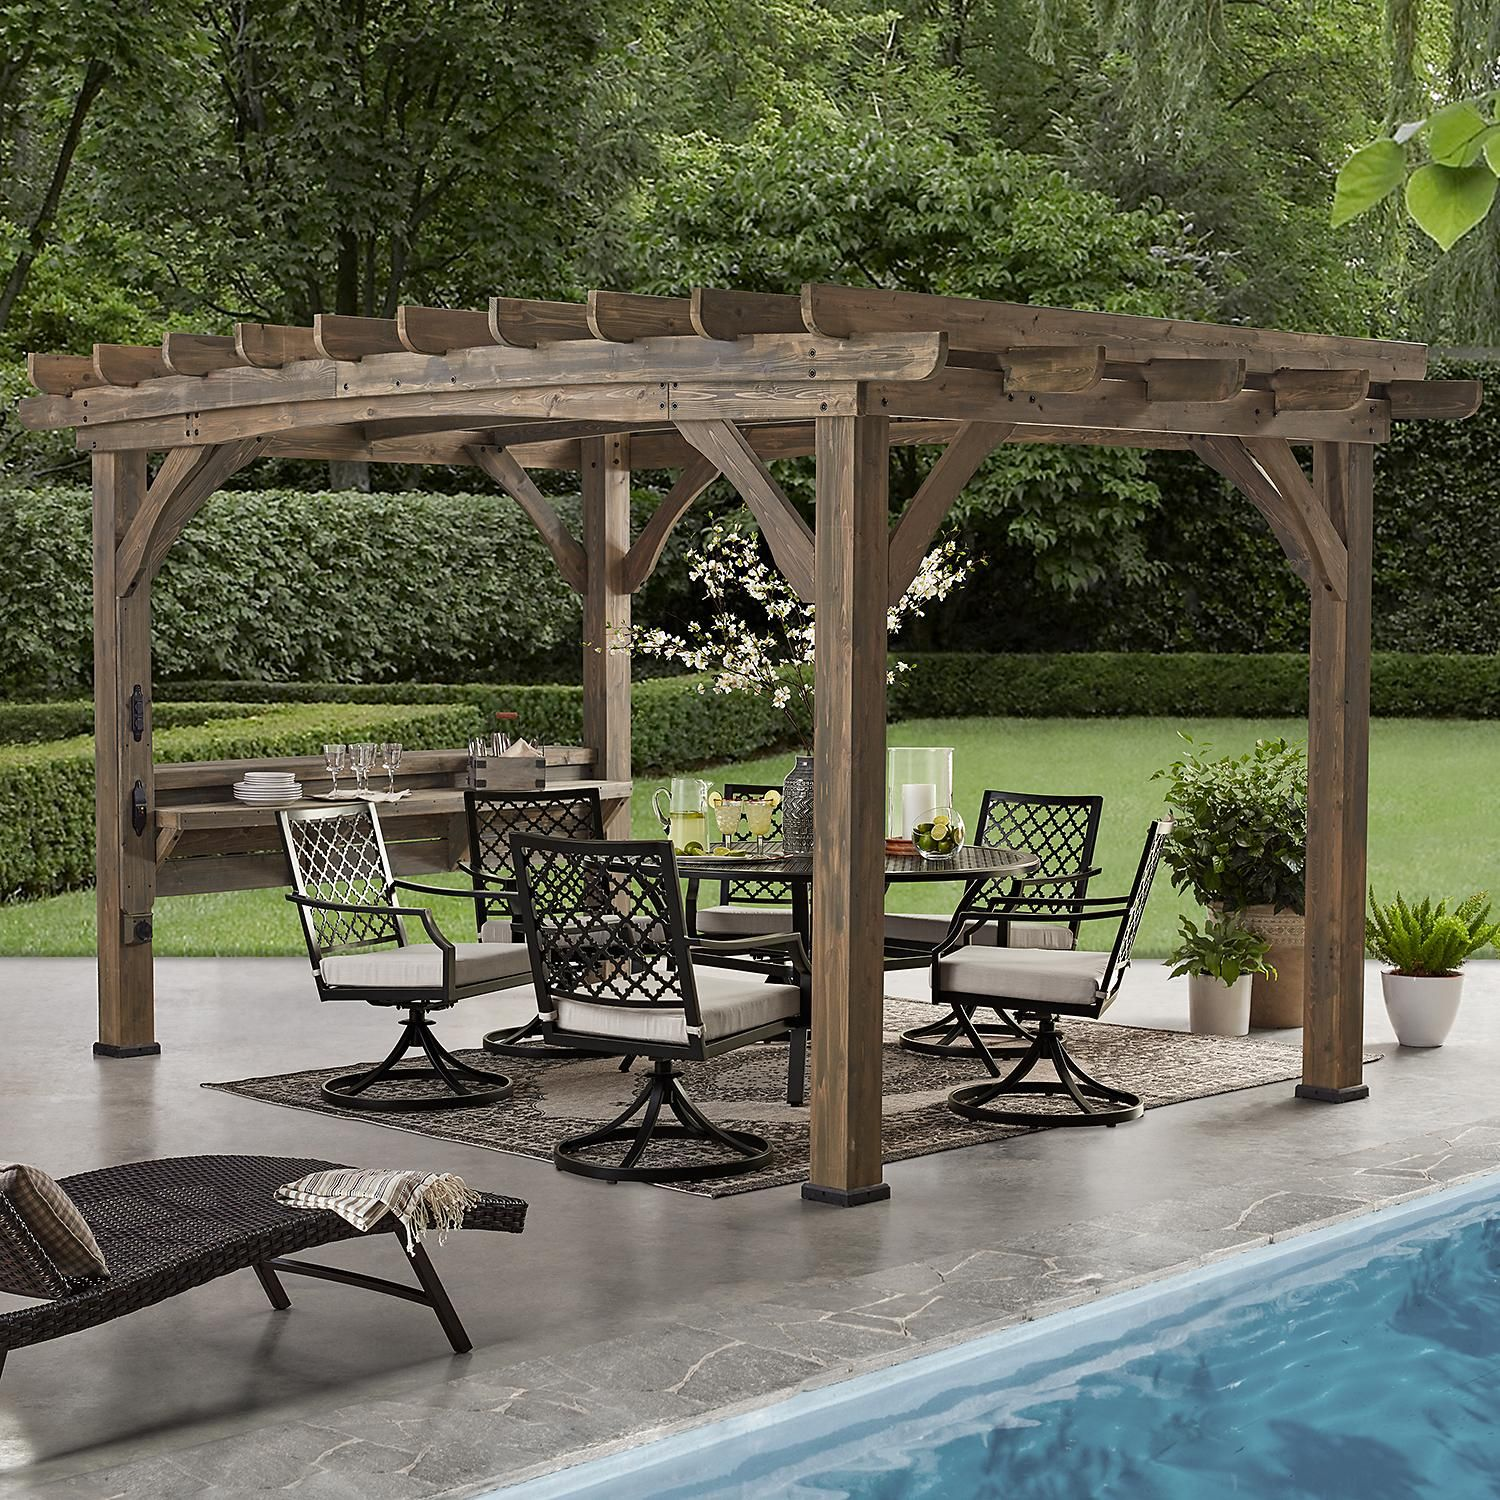 Backyard Discovery 14 X 10 Silverton Pergola With Electric Outlets Barnwood Sam S Club In 2020 Outdoor Pergola Pergola Backyard Pergola